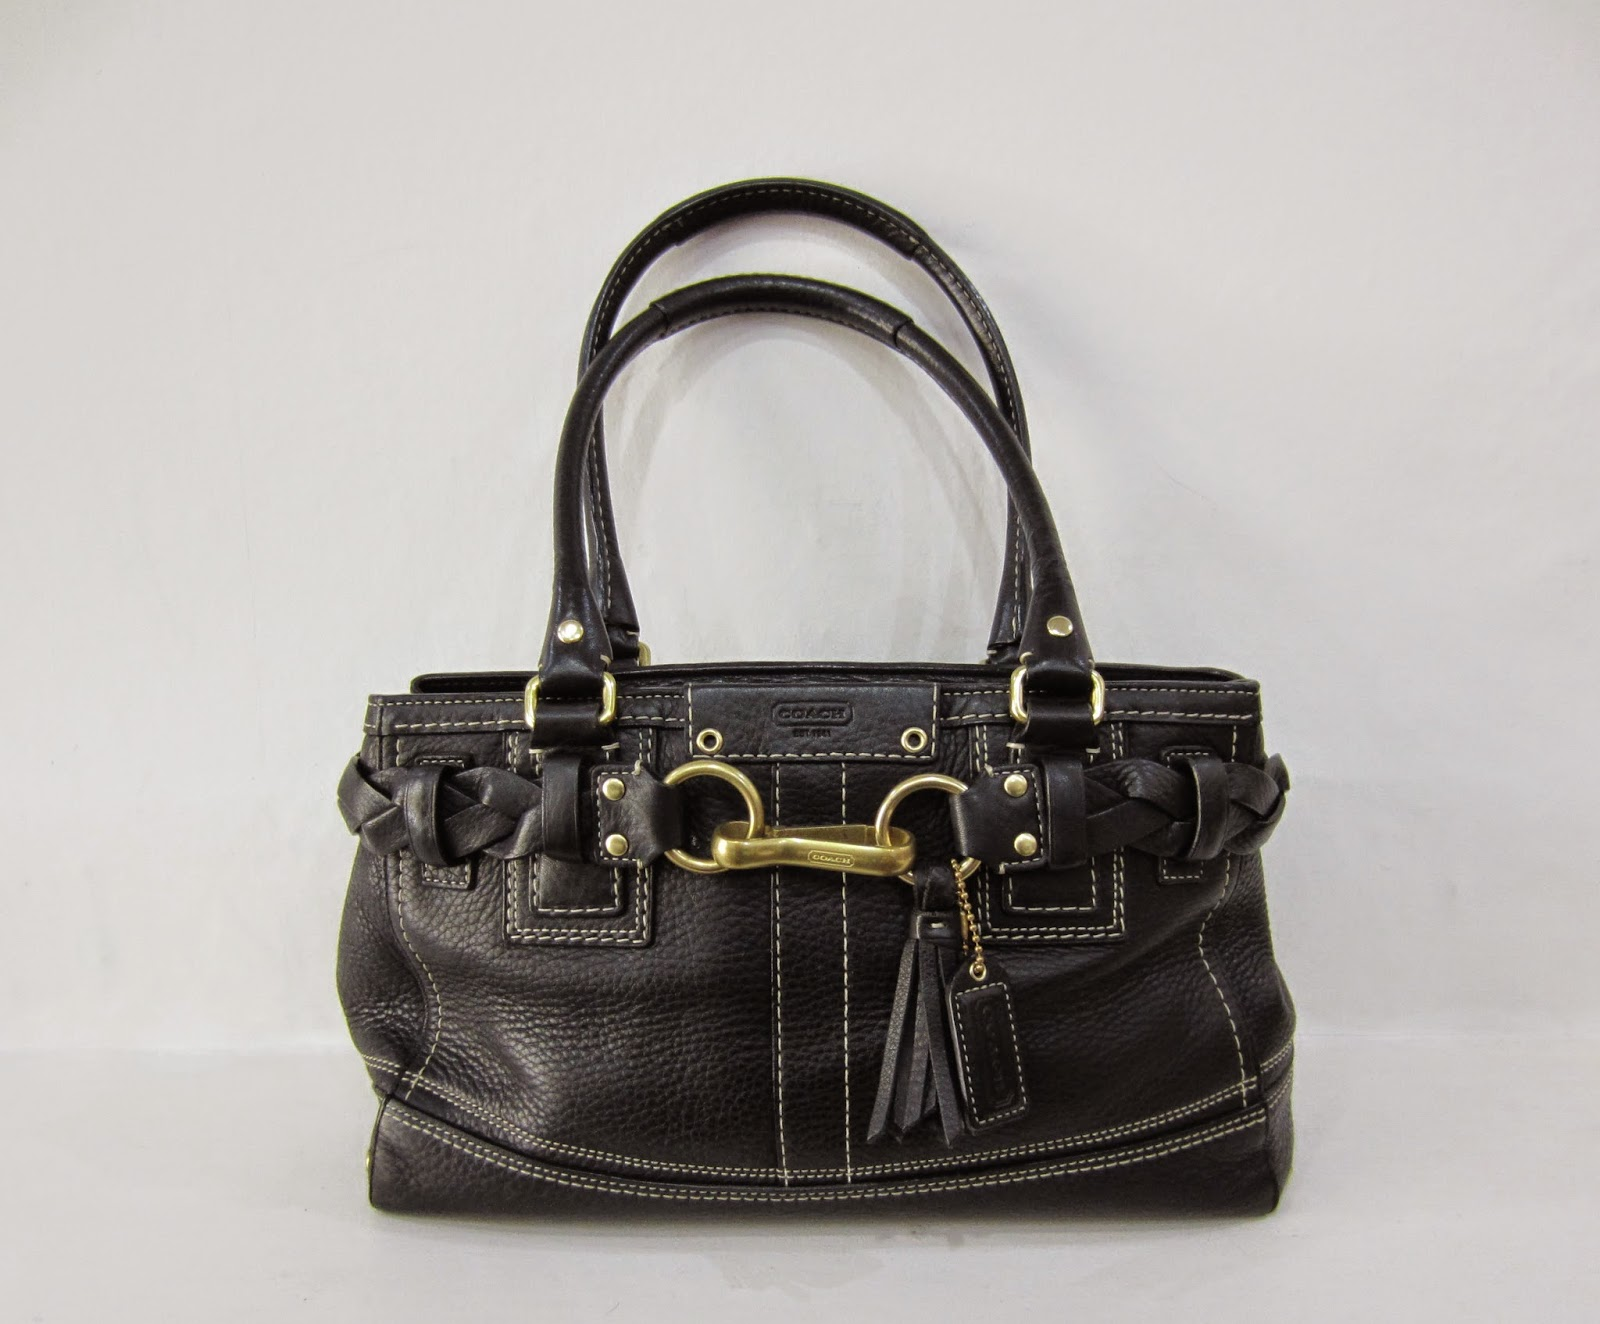 Coach Black Leather Two Handled Bag with White Stitching